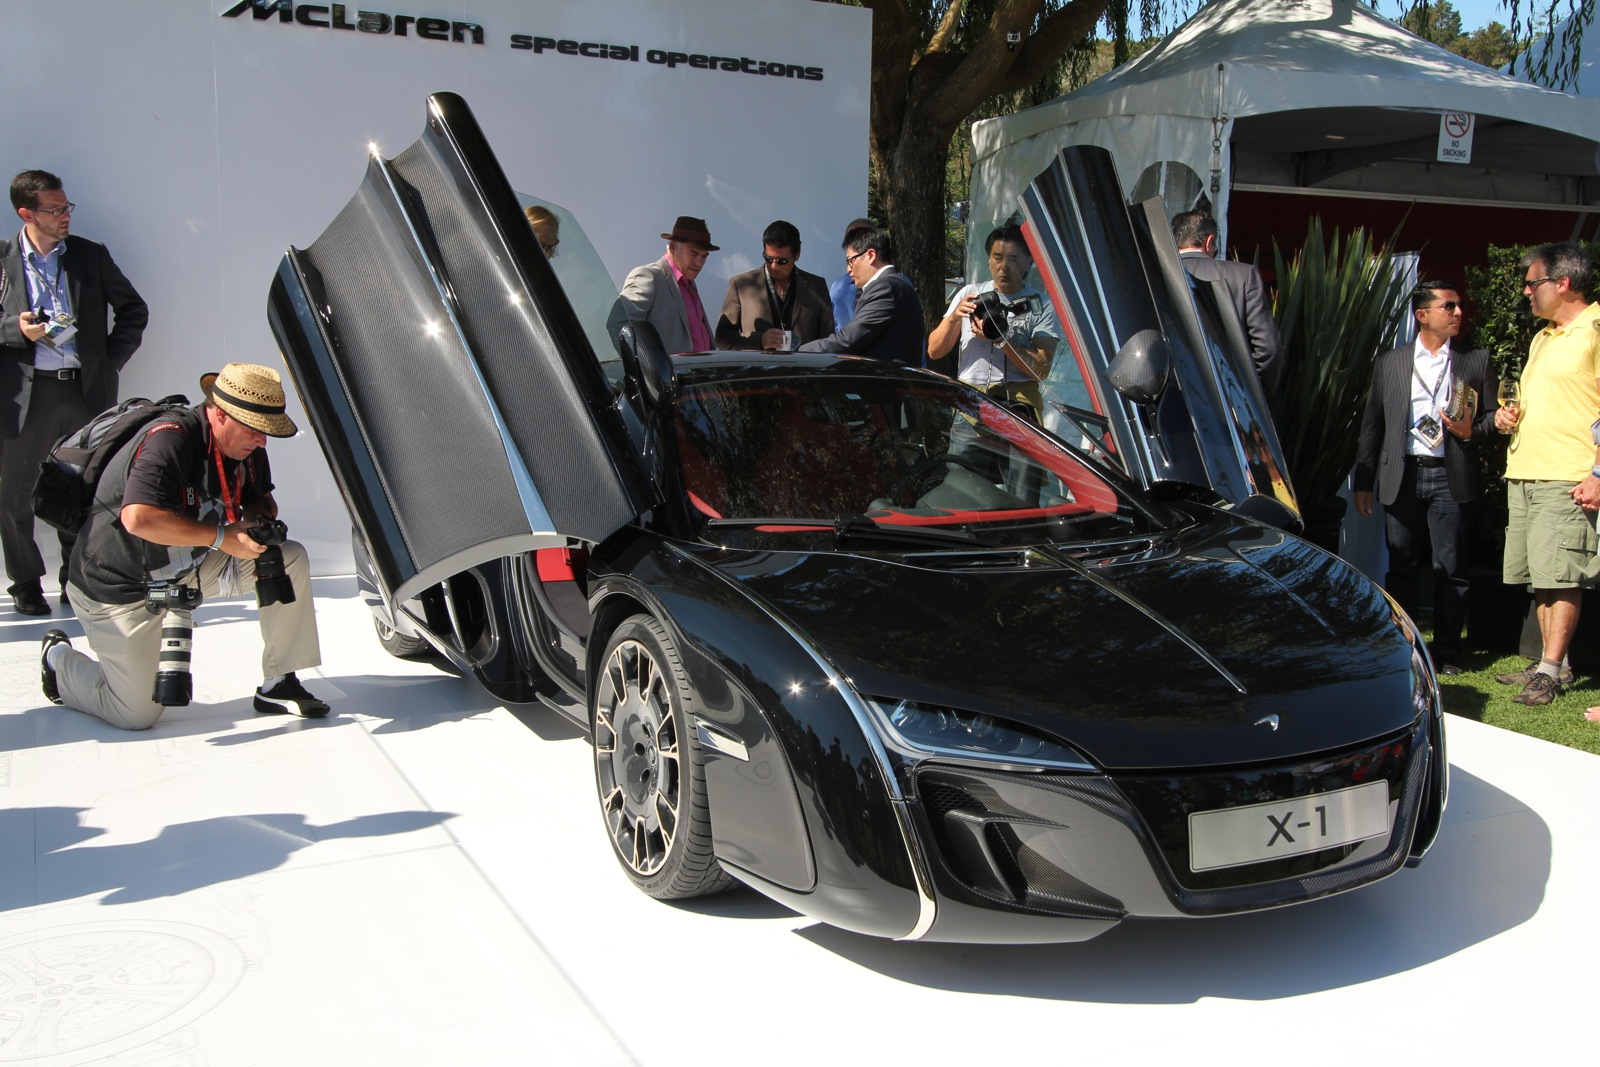 Mclaren Special Operations Shows X Supercar At Pebble Beach